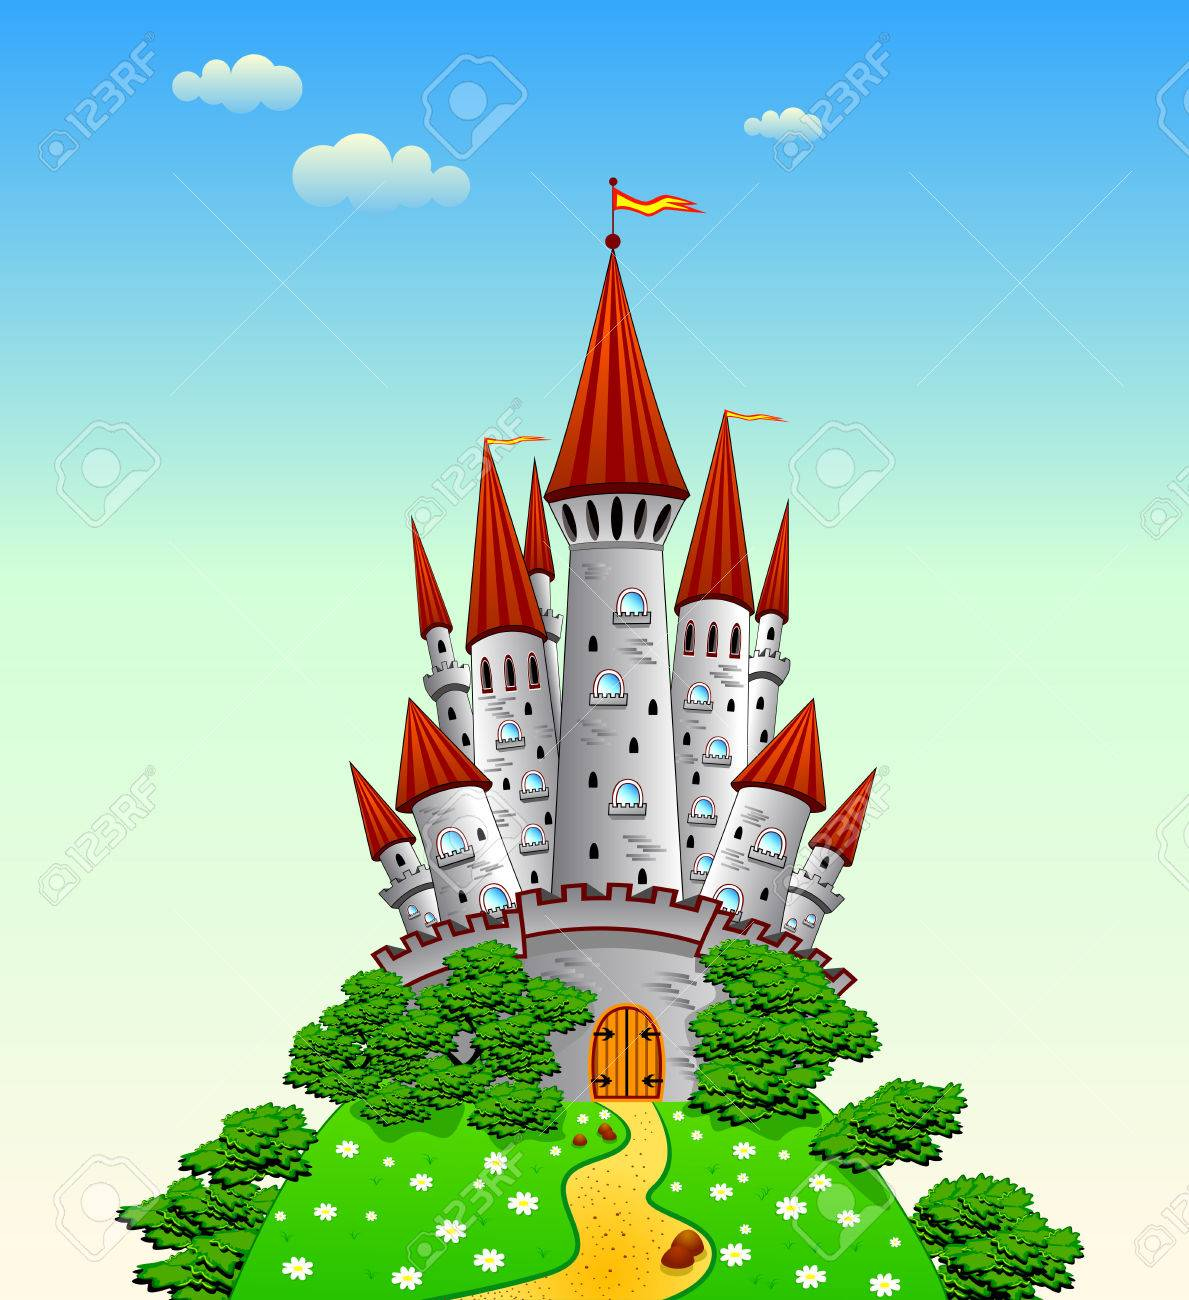 Cartoon Castle On The Hill Royalty Free Cliparts Vectors And Stock Illustration Image 44702617